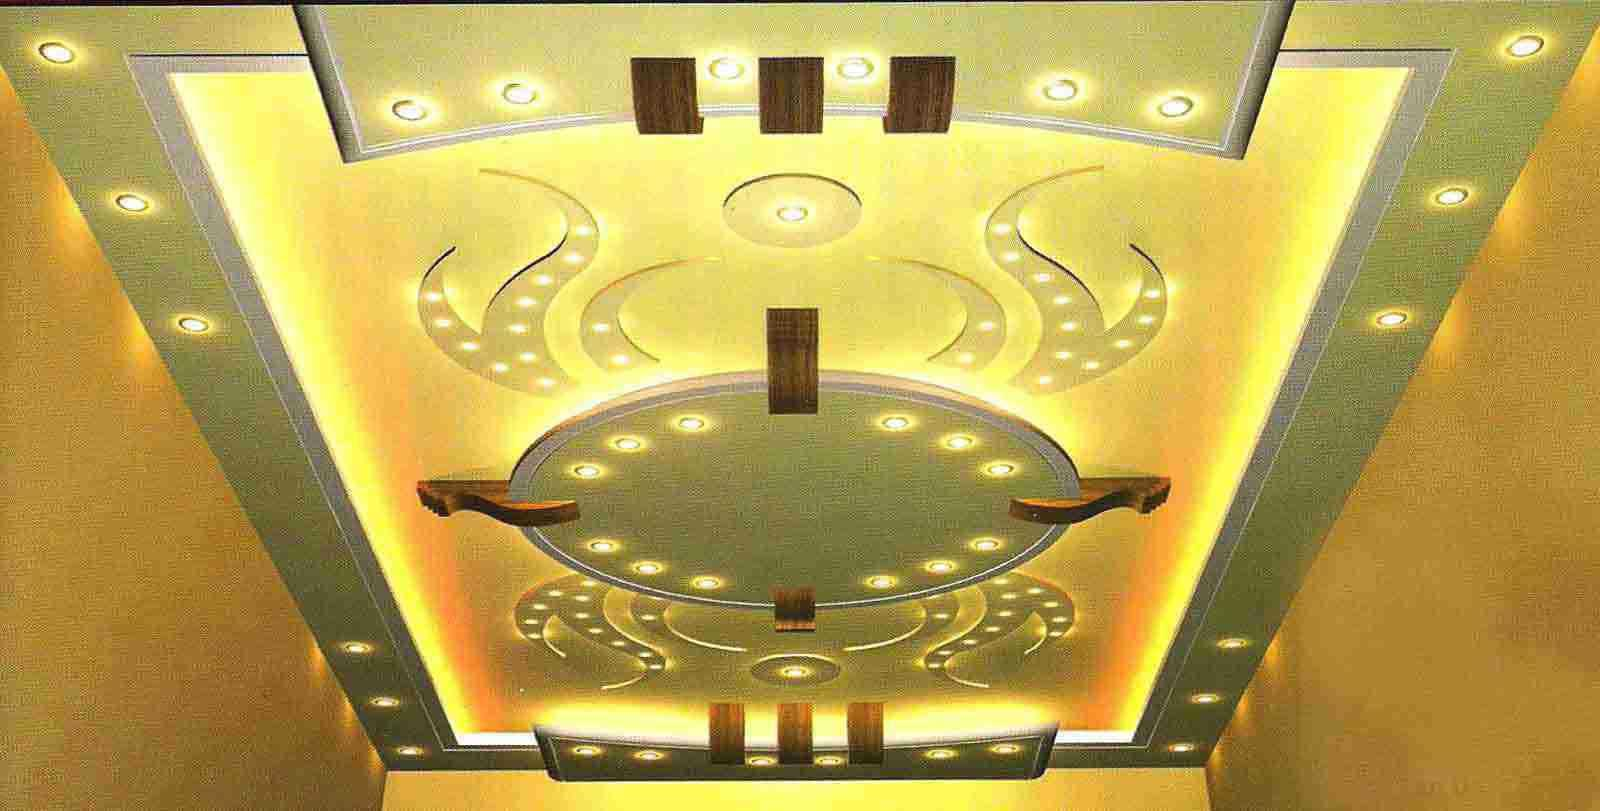 Gypsum Ceiling Design Ideas Android Apps On Google Play - Gypsum ceiling designs for living room